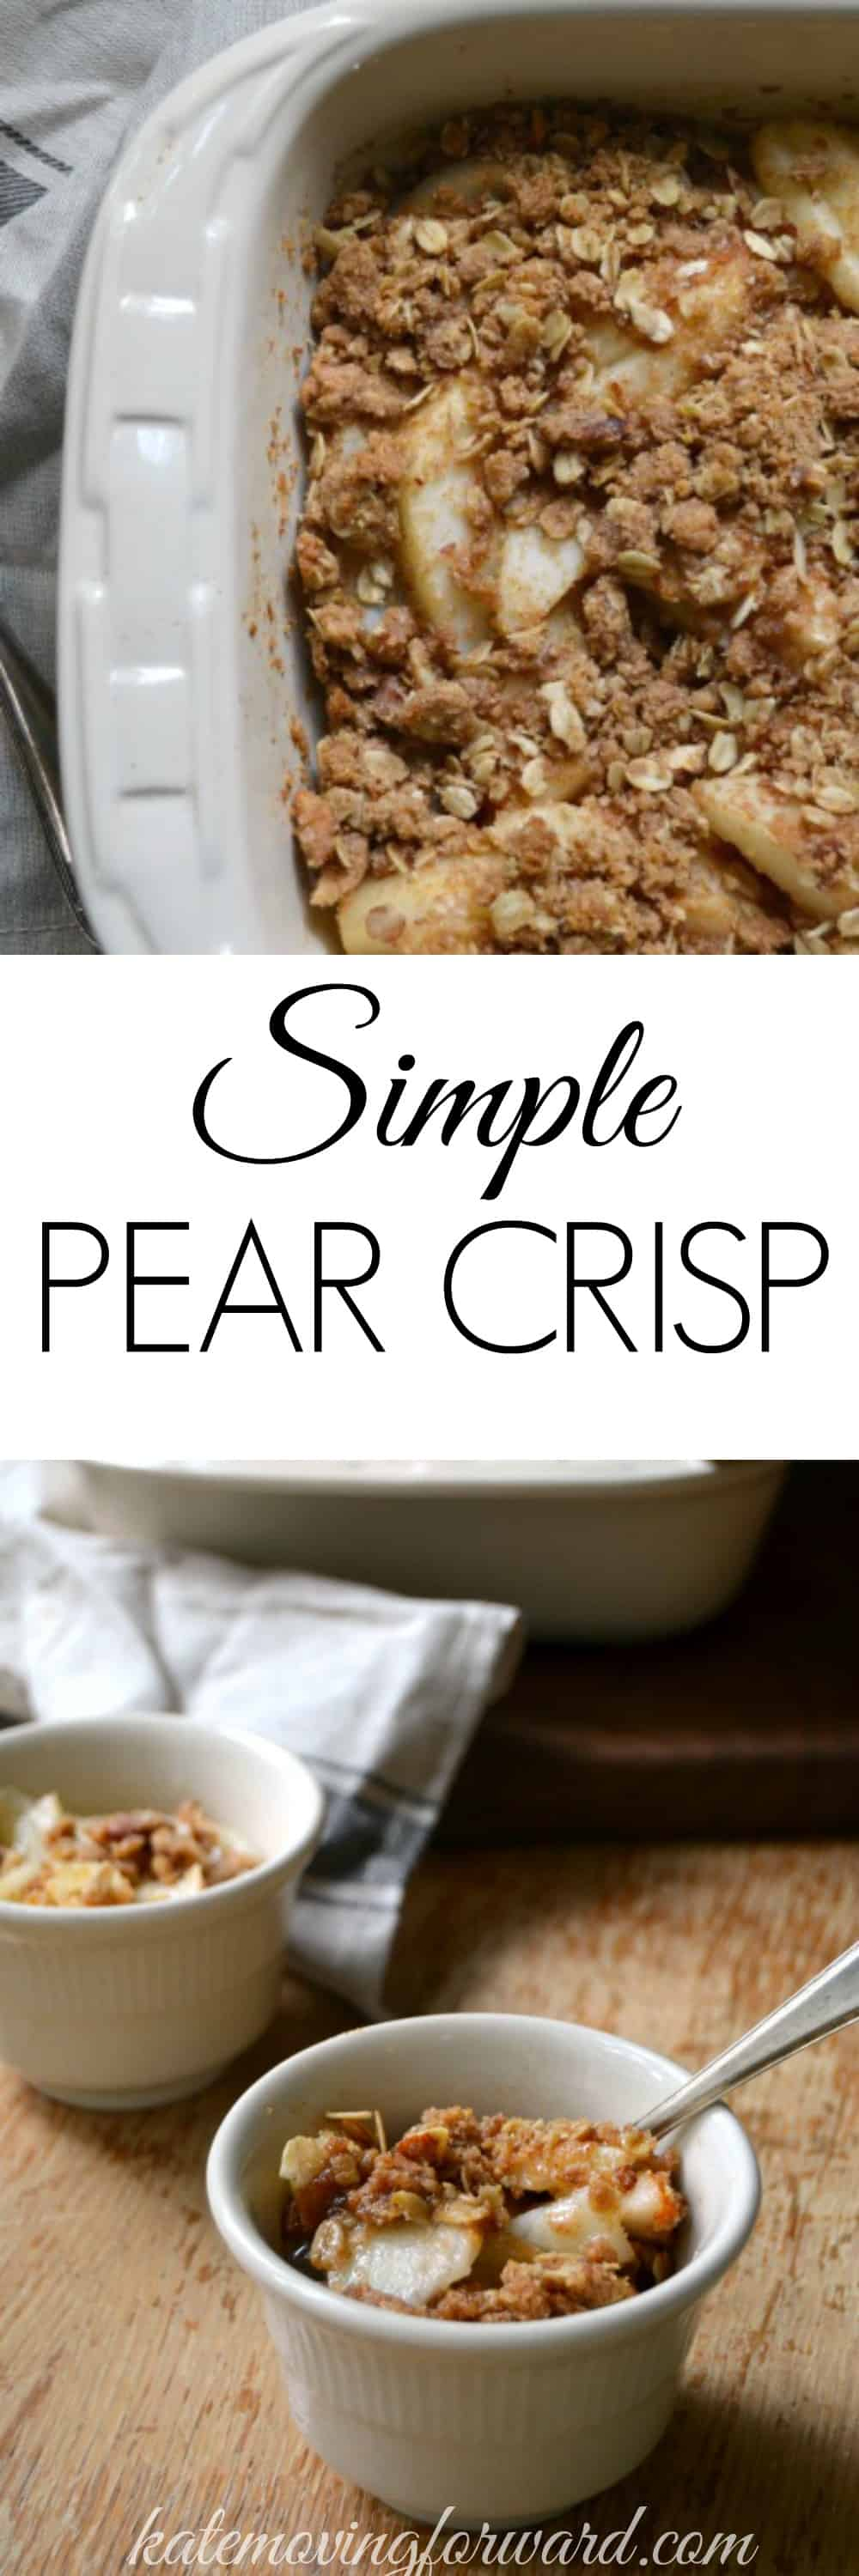 Simple Pear Crisp - A healthy, delicious, and EASY fall dessert recipe!! So crazy-good!